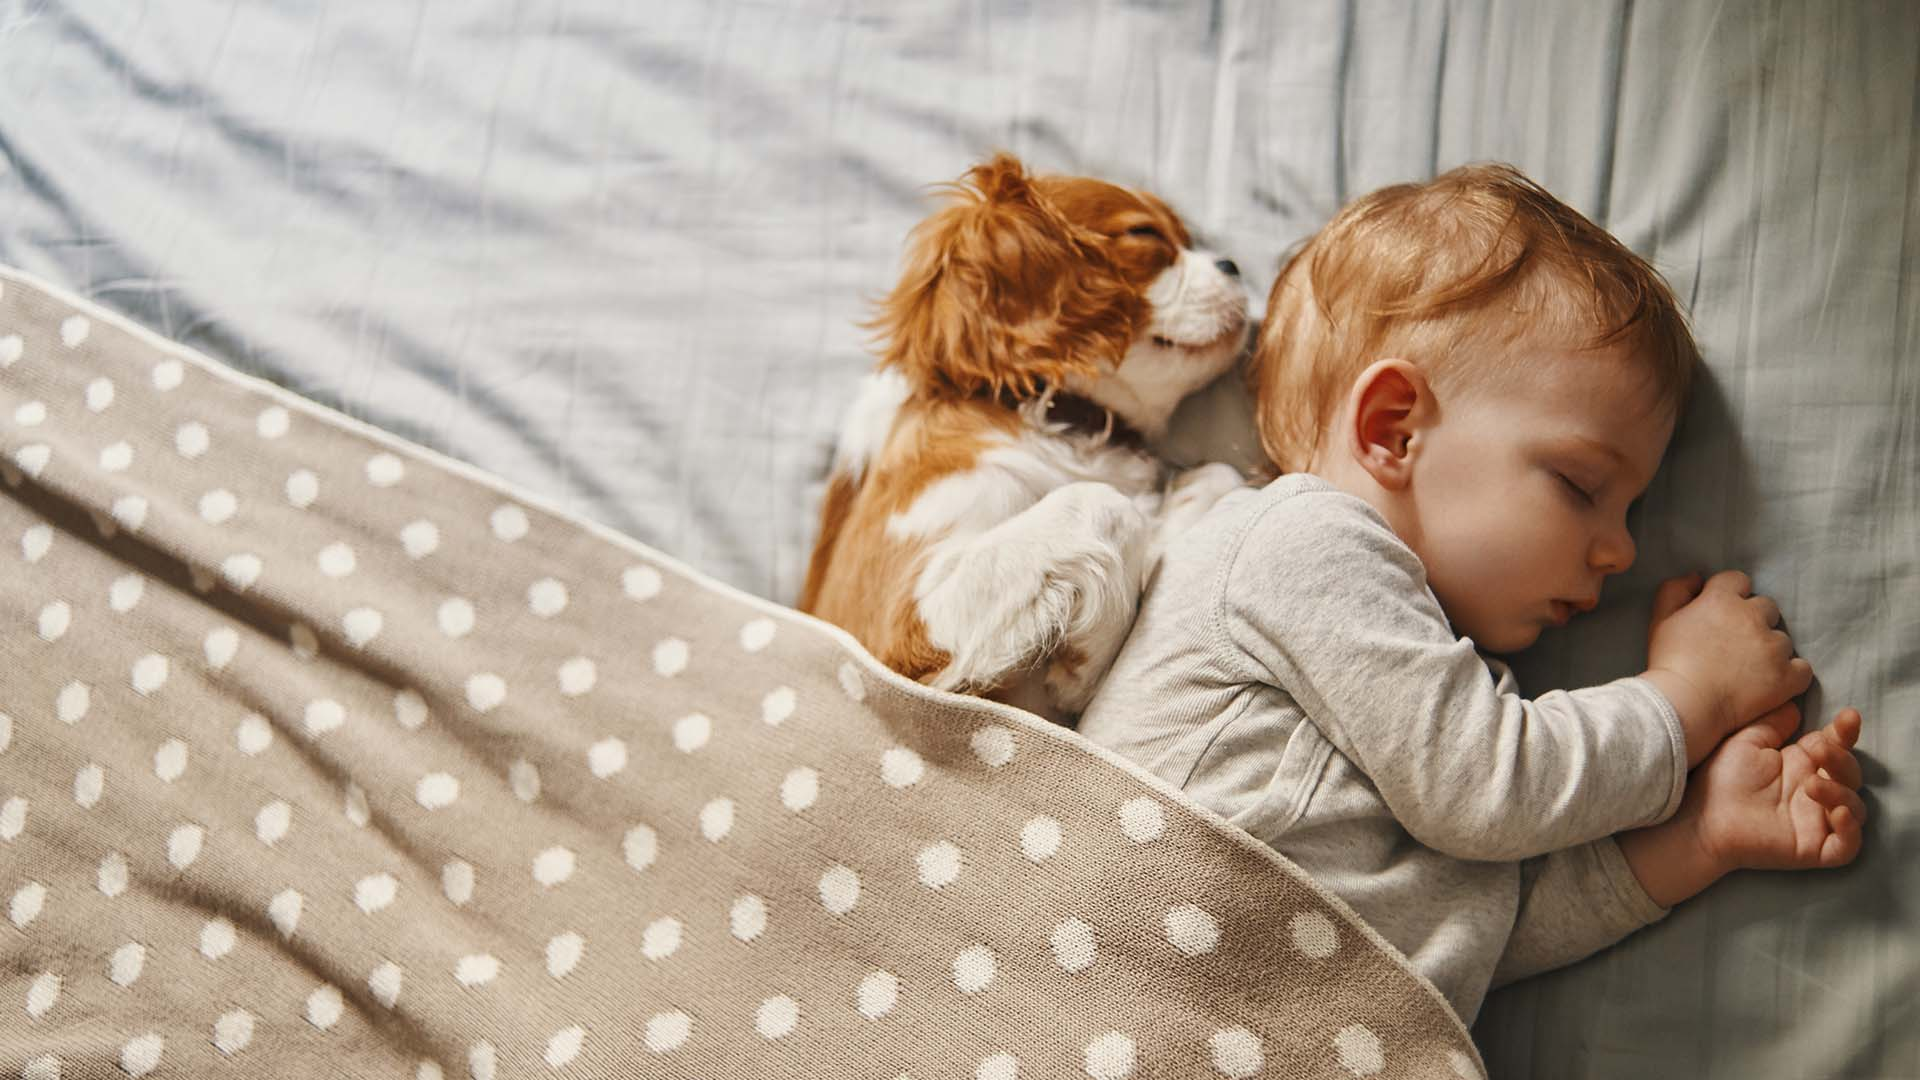 Young child snuggled up with a little dog sleeping.